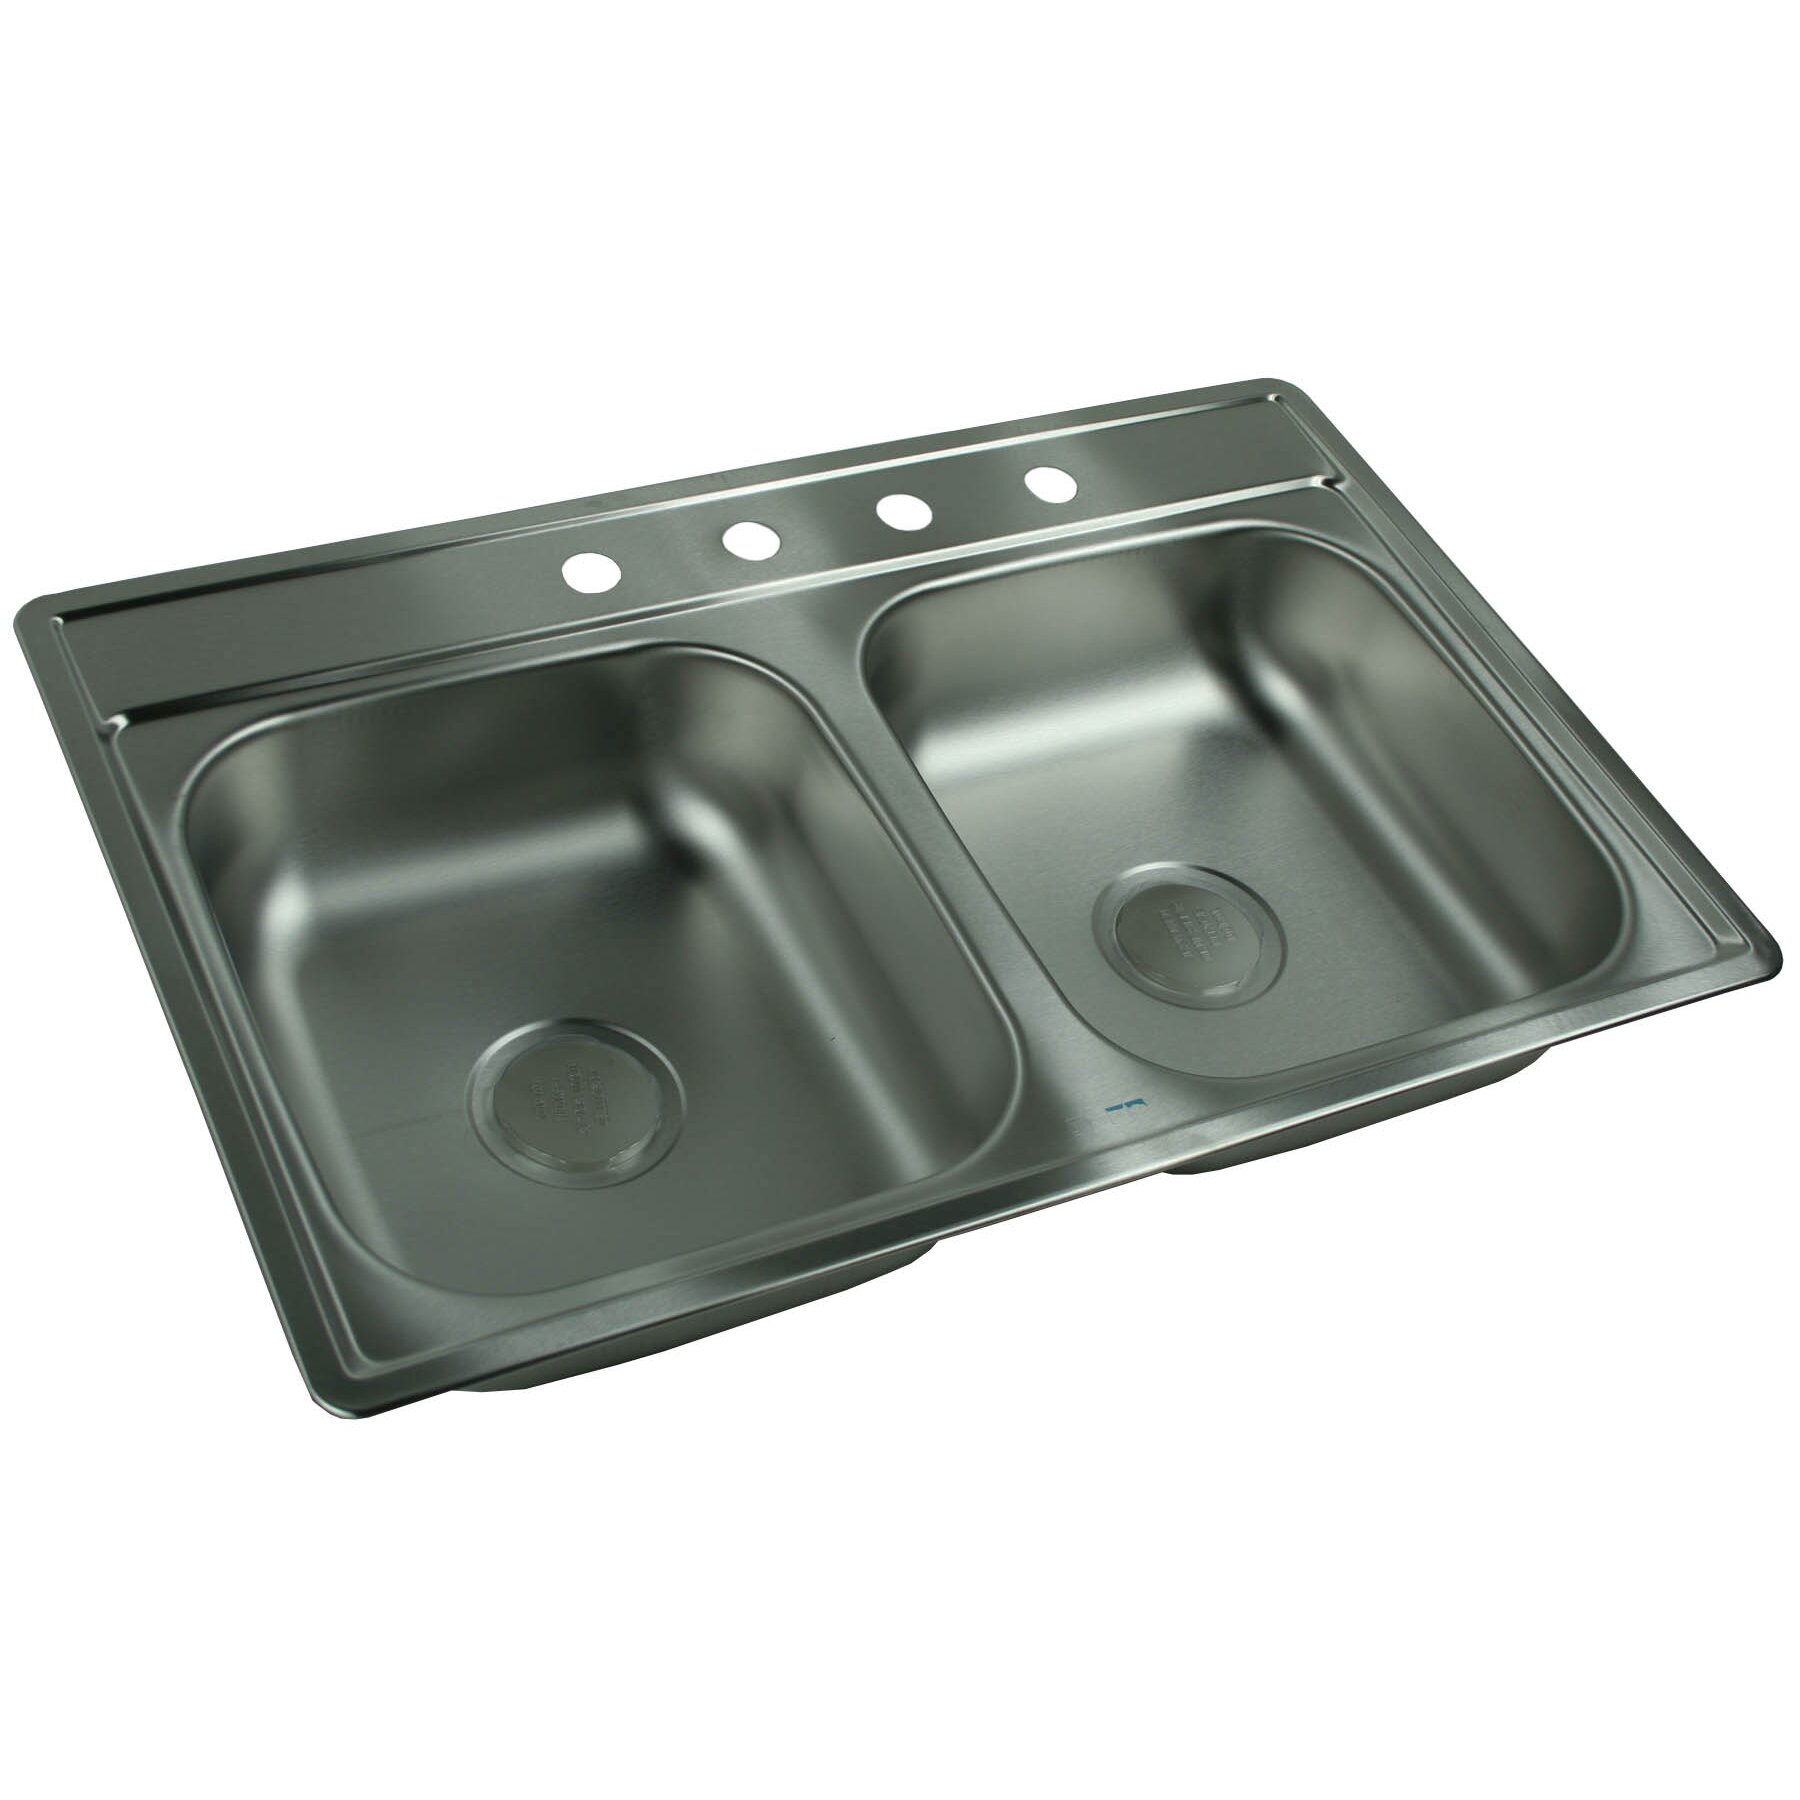 Franke kindred 33 x 22 4 hole double bowl kitchen sink reviews wayfair - Kindred undermount kitchen sinks ...